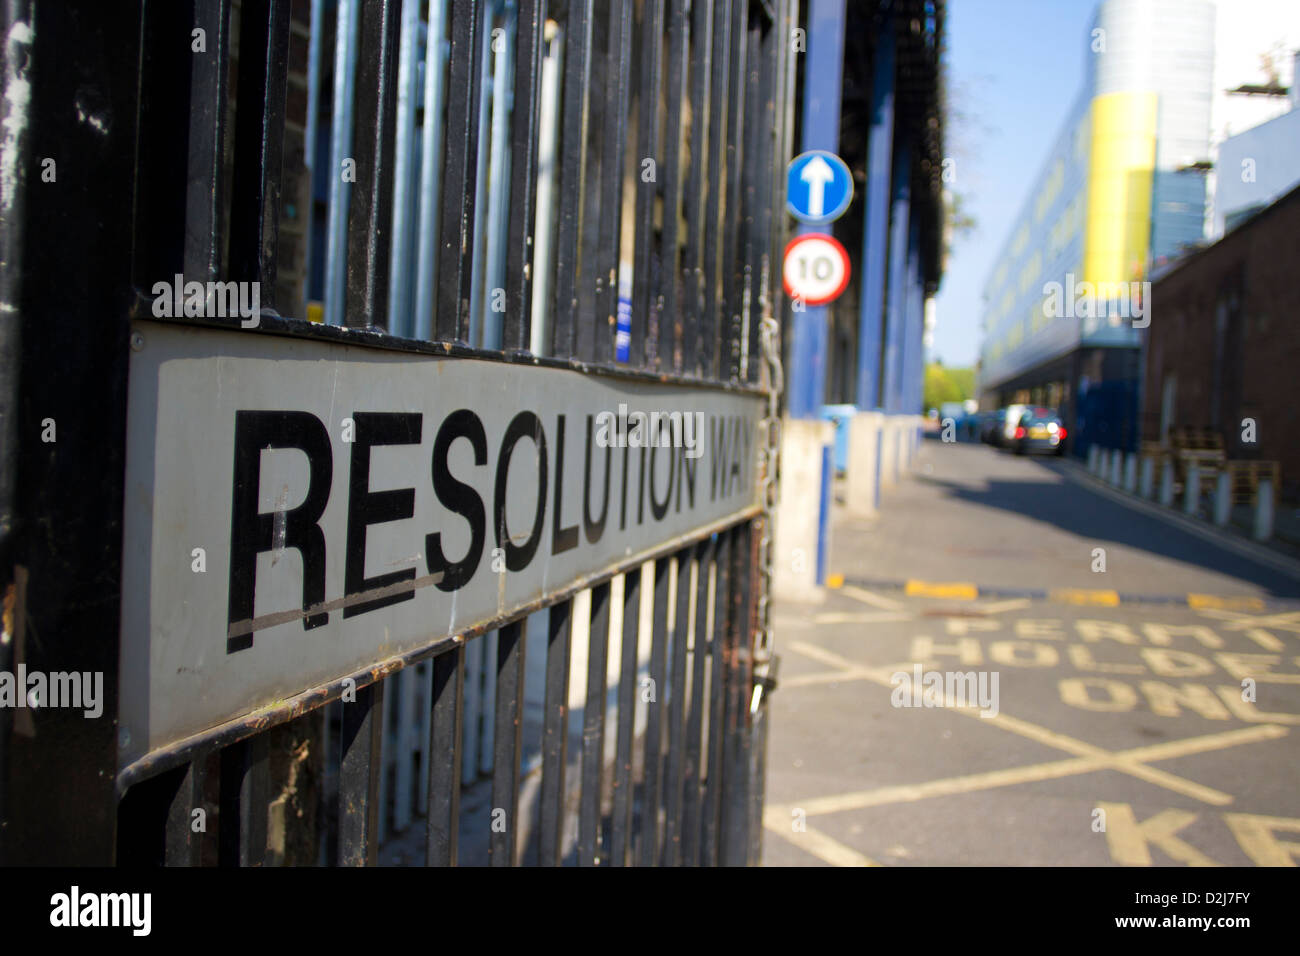 Resolution Way - Stock Image